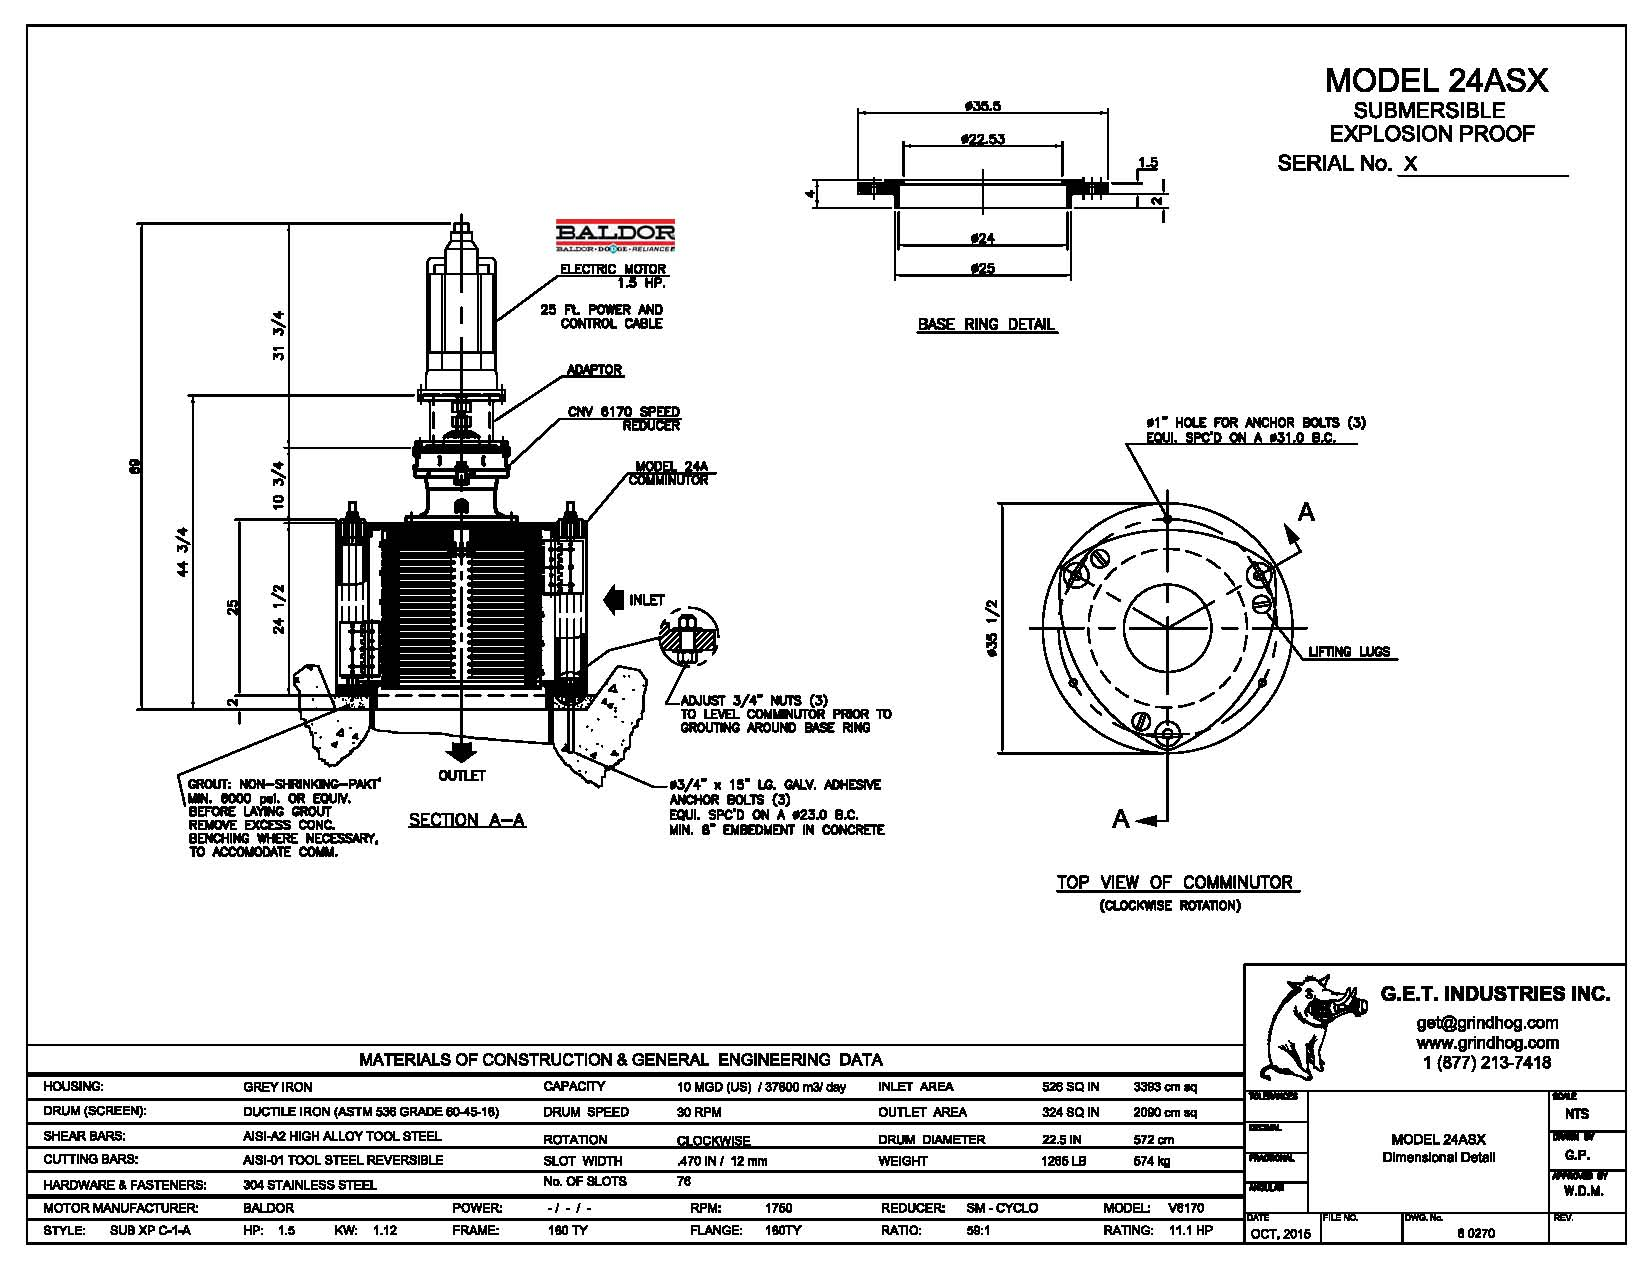 data drawing for Model 24ASX